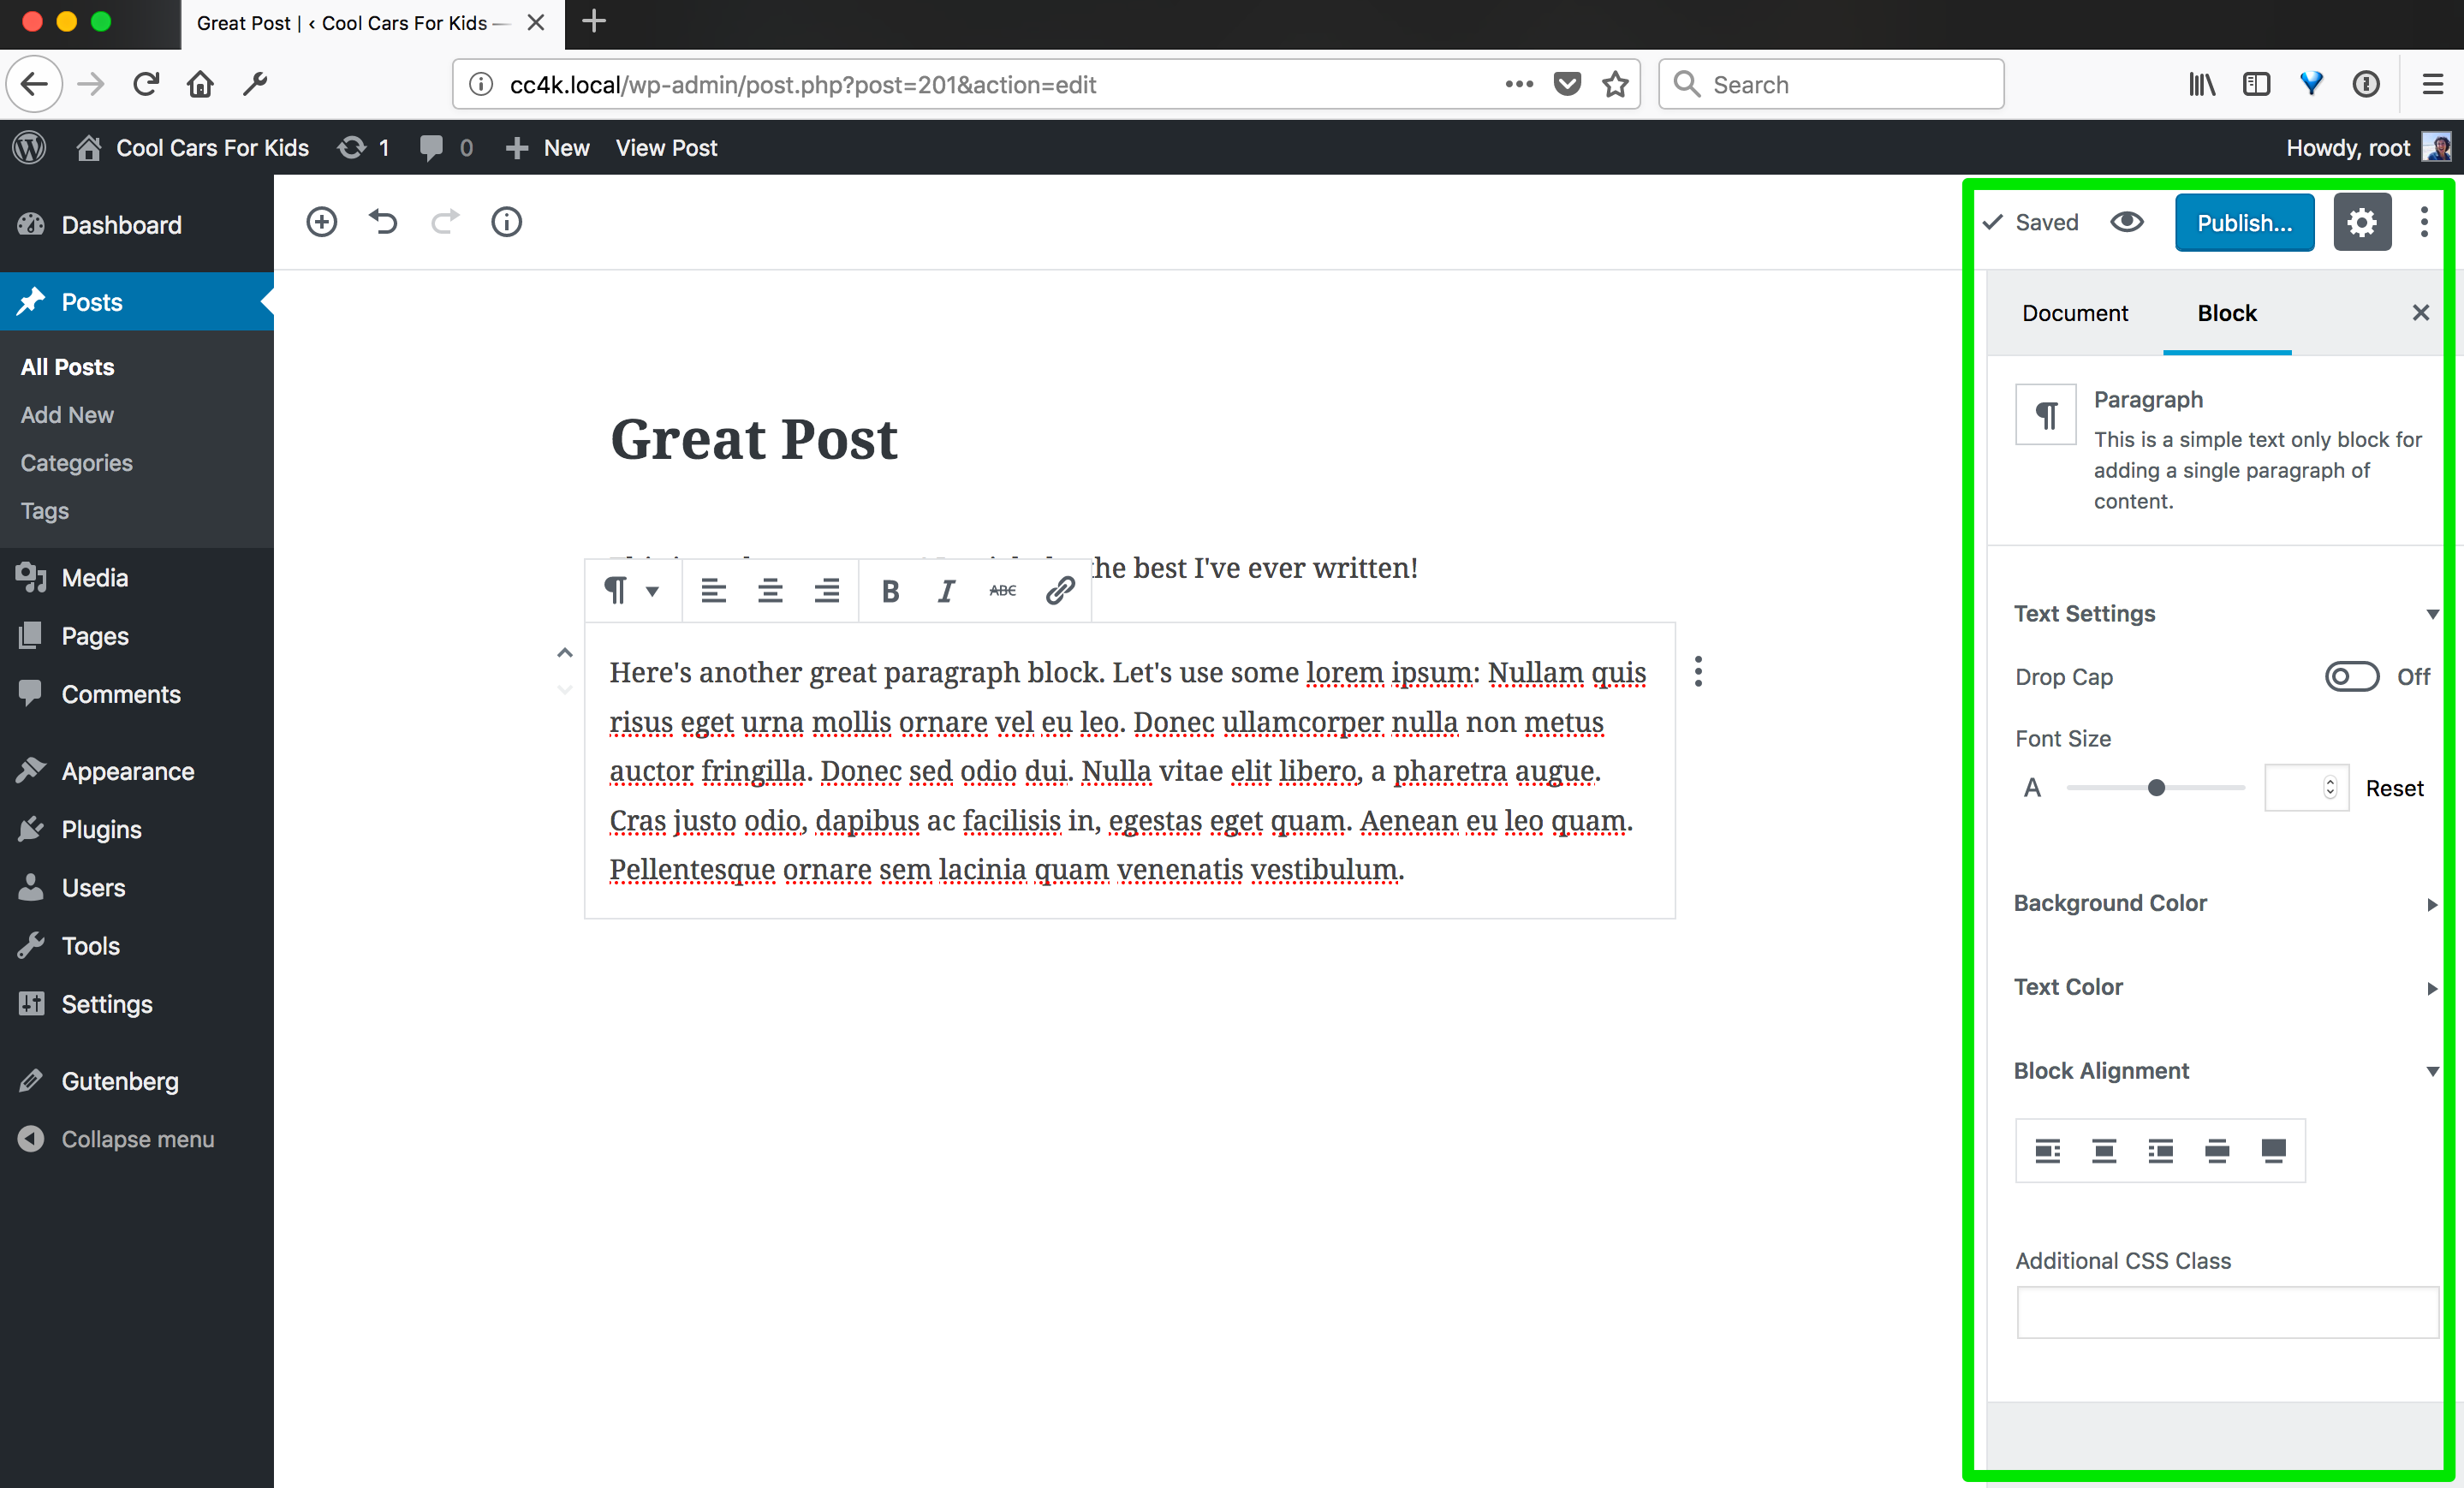 A screenshot of a blank Gutenberg post with a graphic indicating the block inspector area on the right.